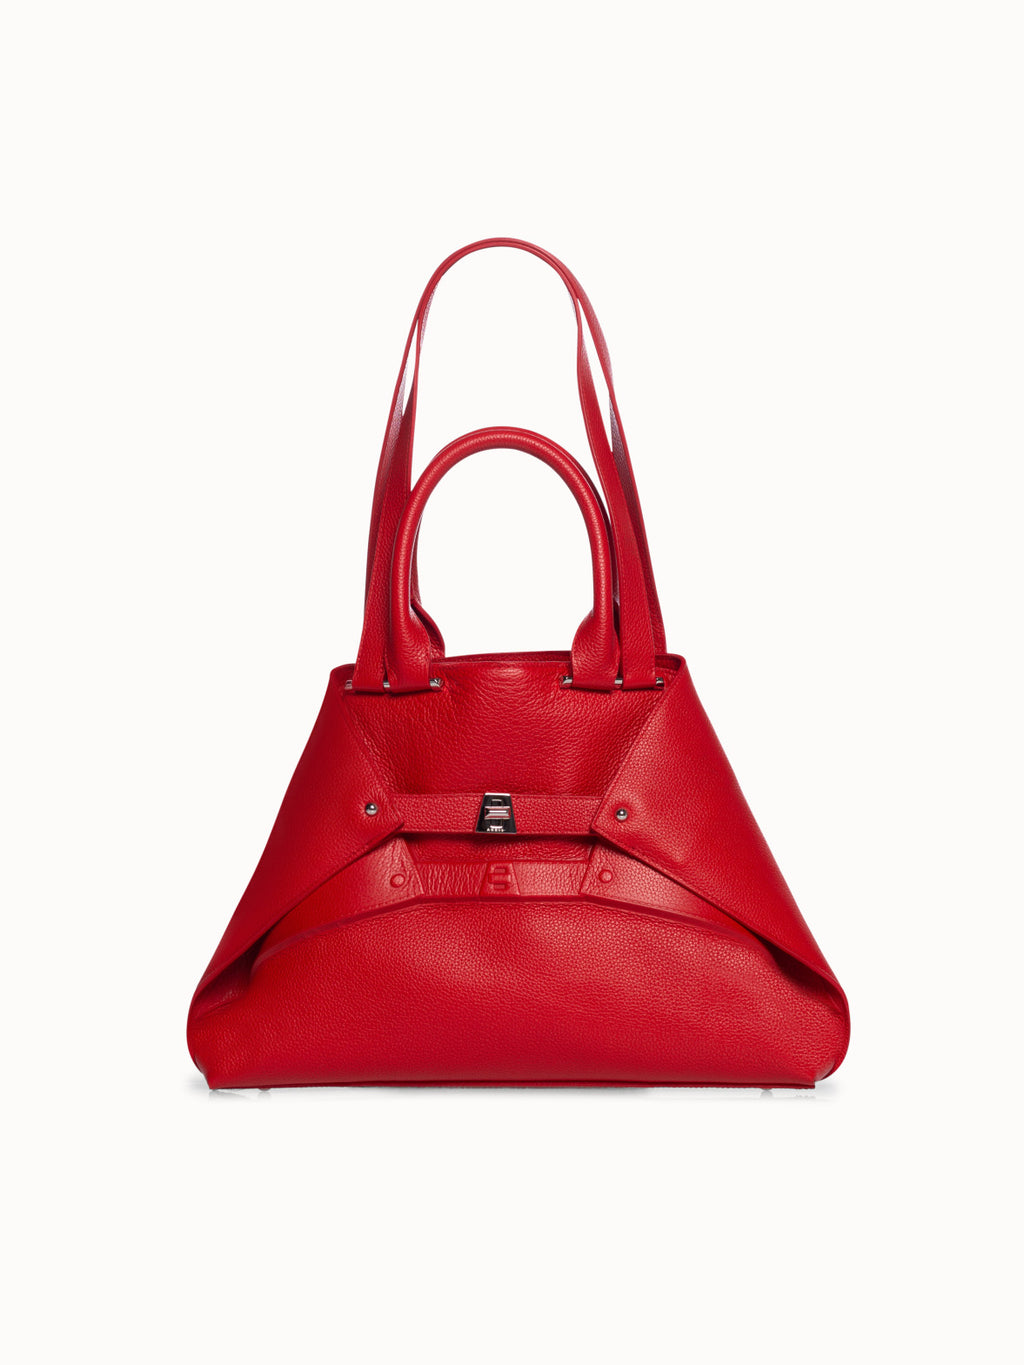 Small Aicon Leather Tote Bag with Embossed Details by Aicon, available on akris.com for $1990 Emma Roberts Bags Exact Product